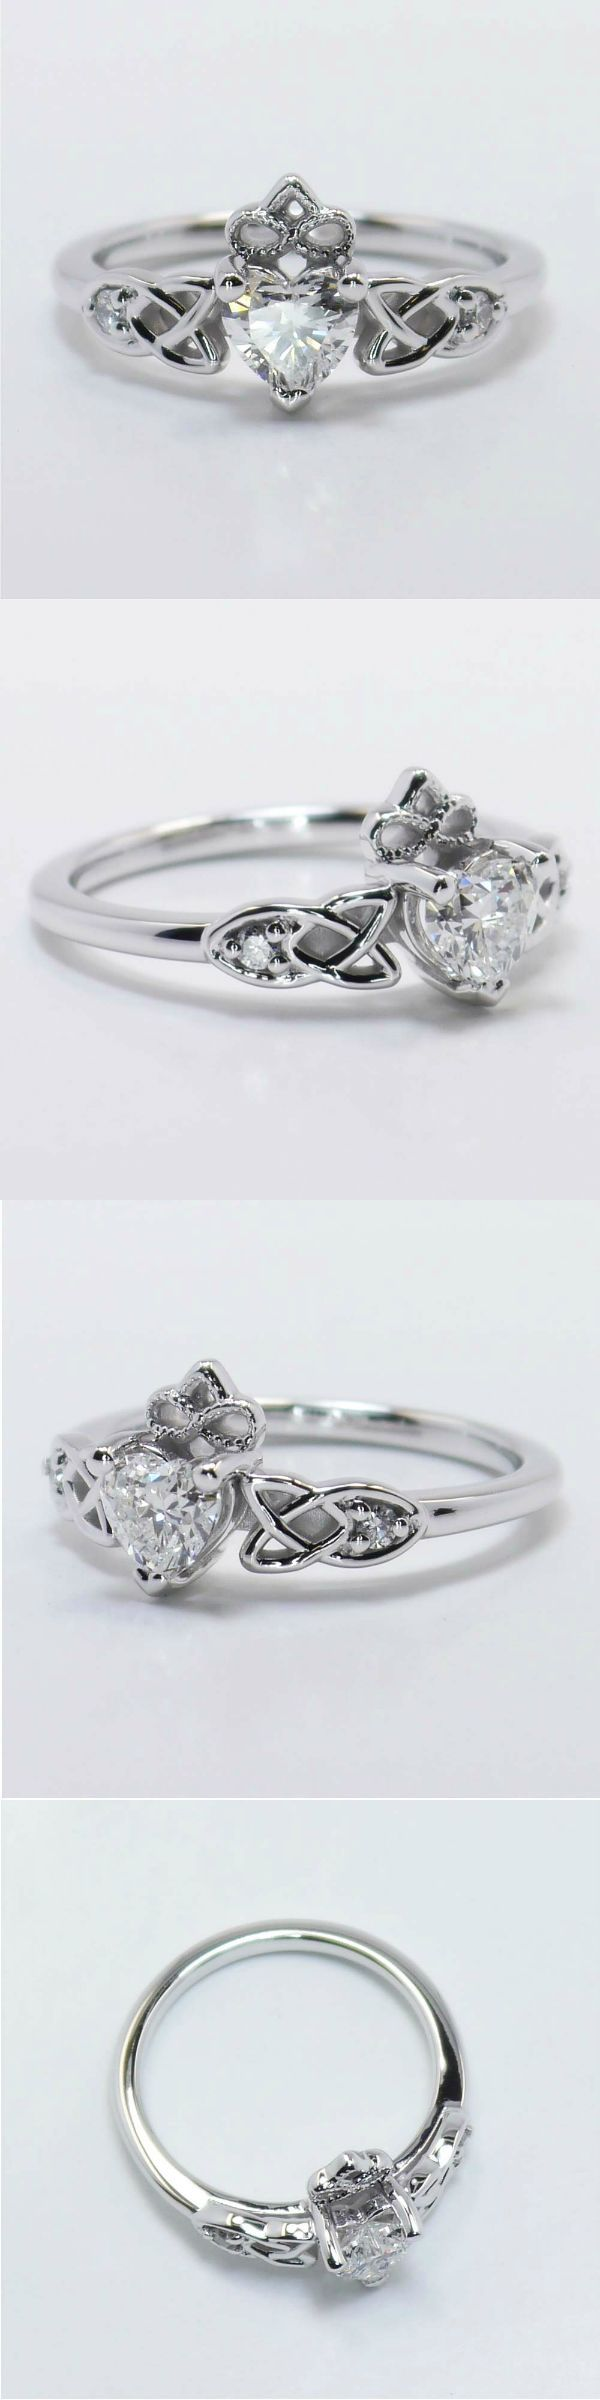 Celtic Claddagh Ring in White Gold Heart 0.54 Ctw. Color: F Clarity: SI1 Diamond/Gem Cost: $720 Celtic themes are increasingly popular for engagement and wedding jewelry. Metal: White Gold Side Shape: Round Side Carat: 0.06 Side Color: F-G Side Clarity: SI1 Setting Cost: $975 www.brilliance.com